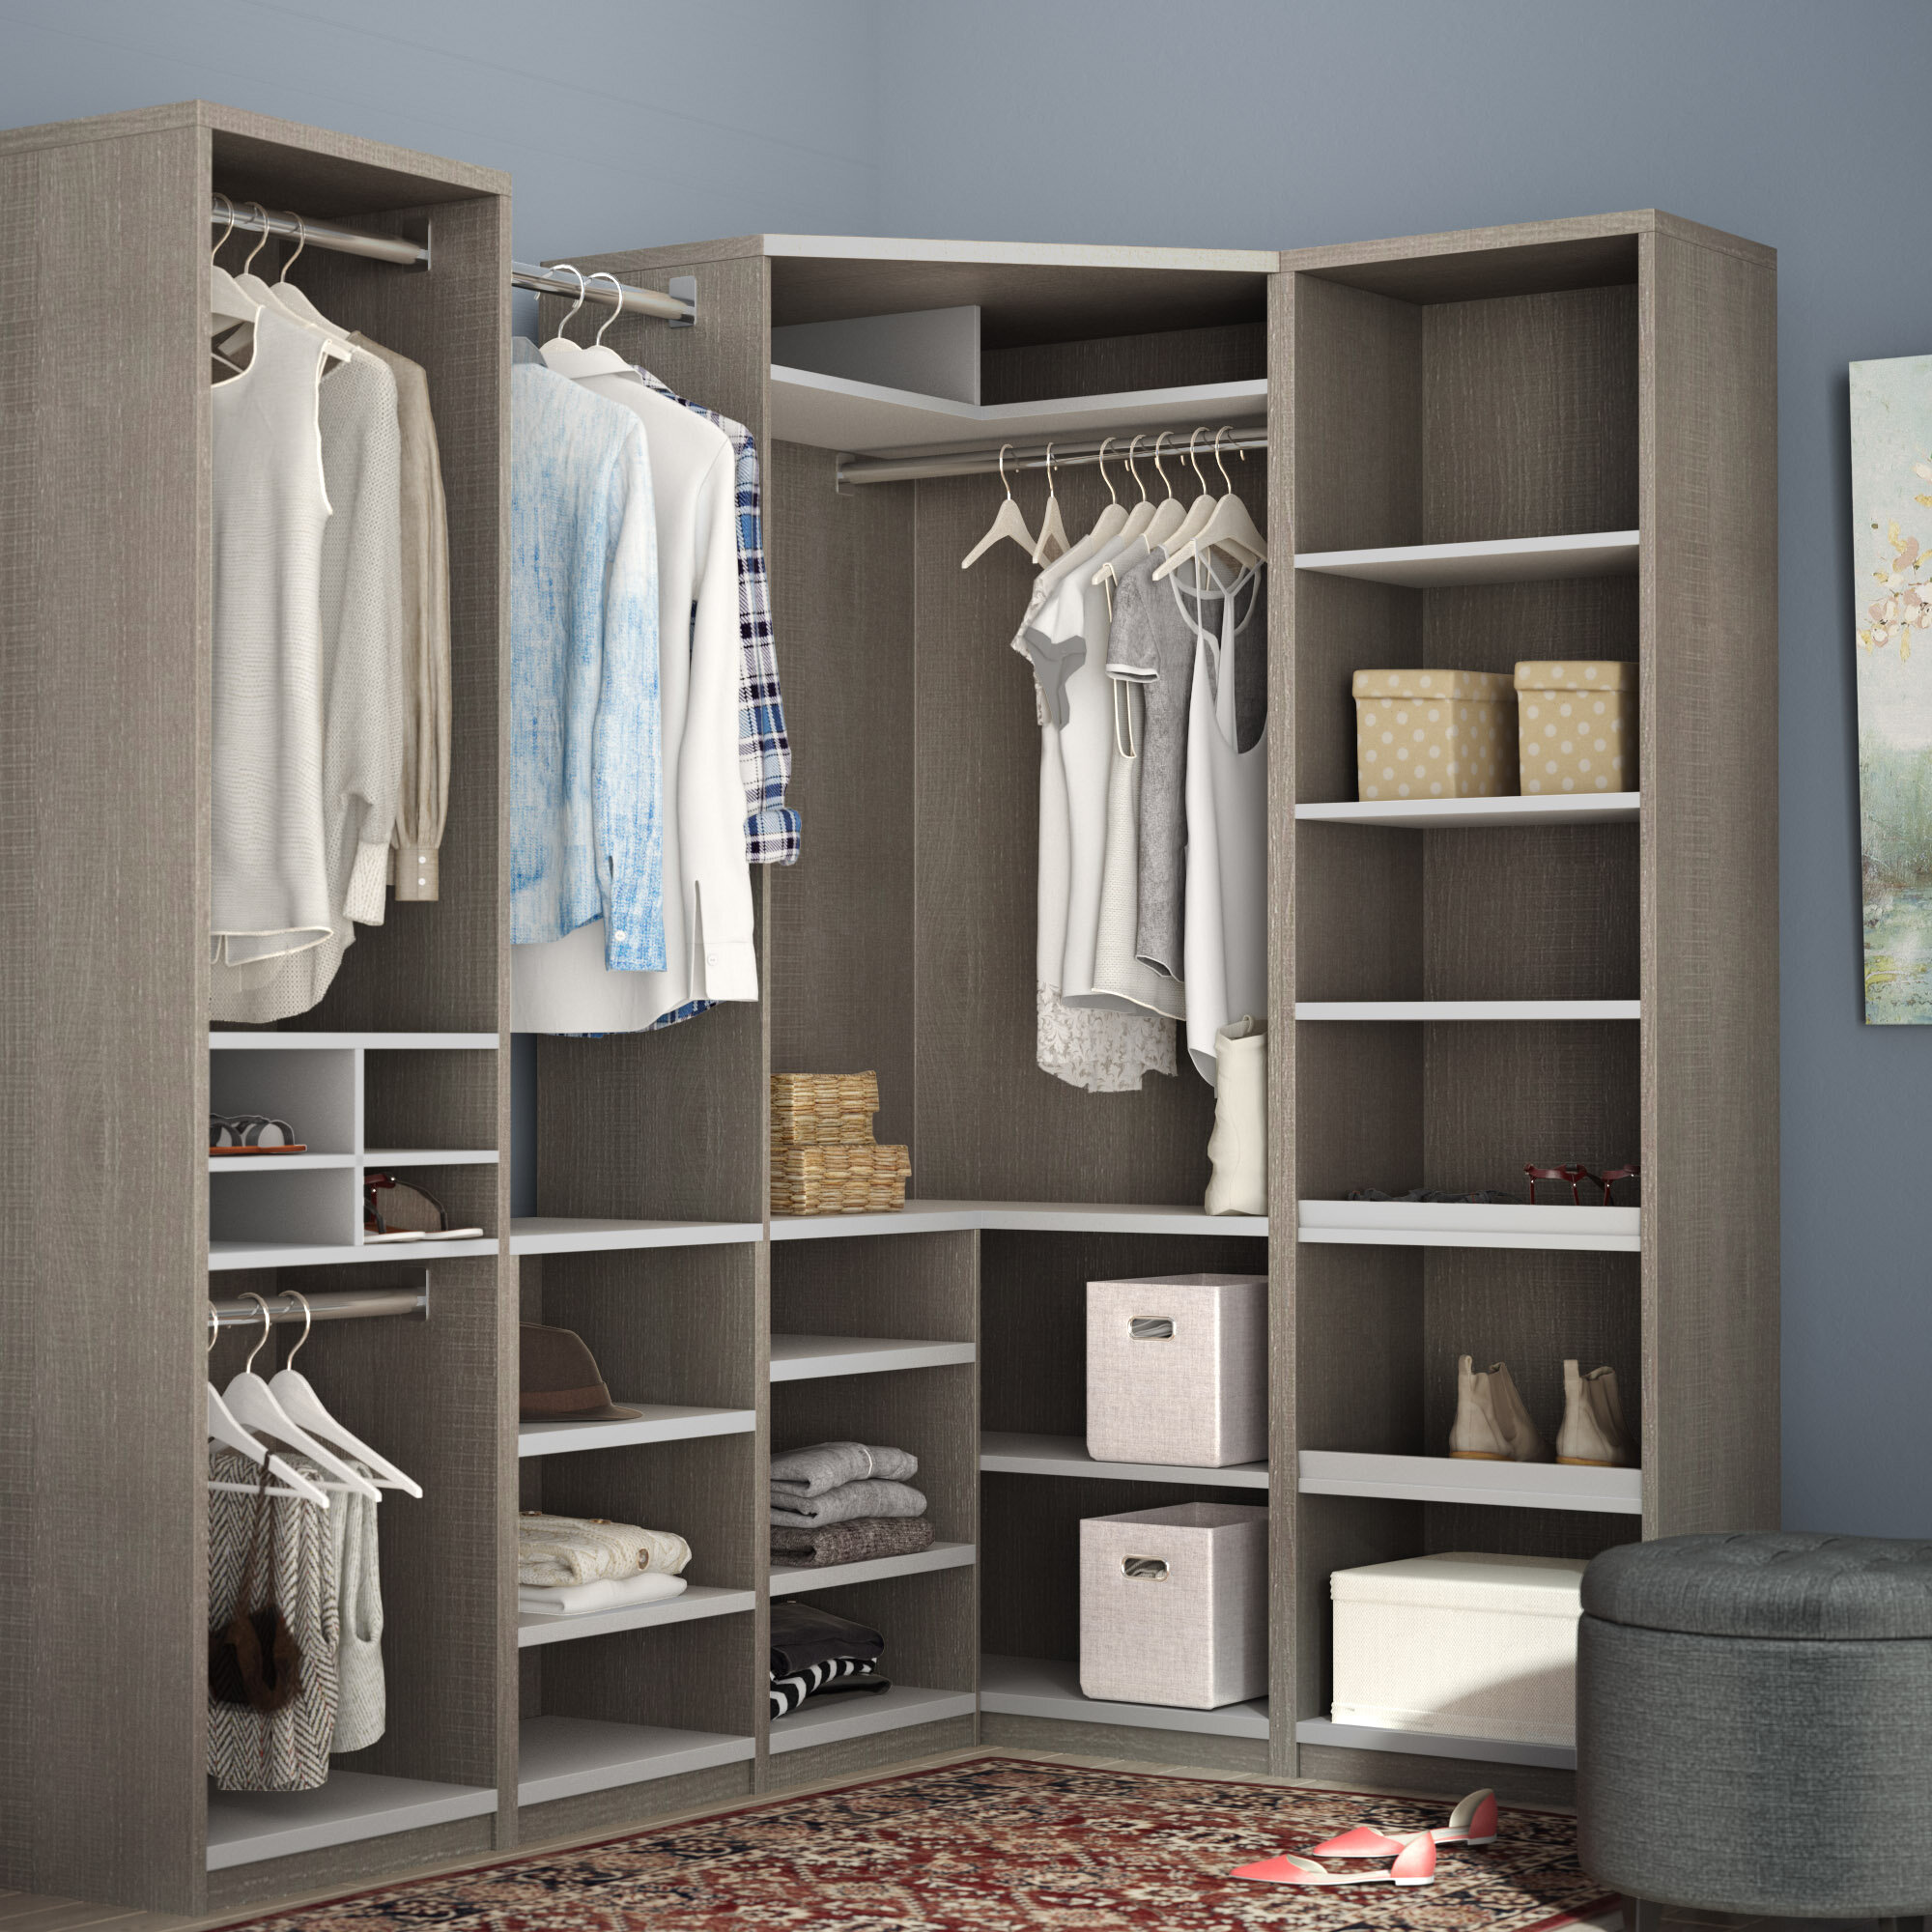 food most wood furniture ideas pull freestanding wide inch pantry shelving organizers popular organization cabinet kitchen built in cupboard storage system solutions out cabinets closet armoire